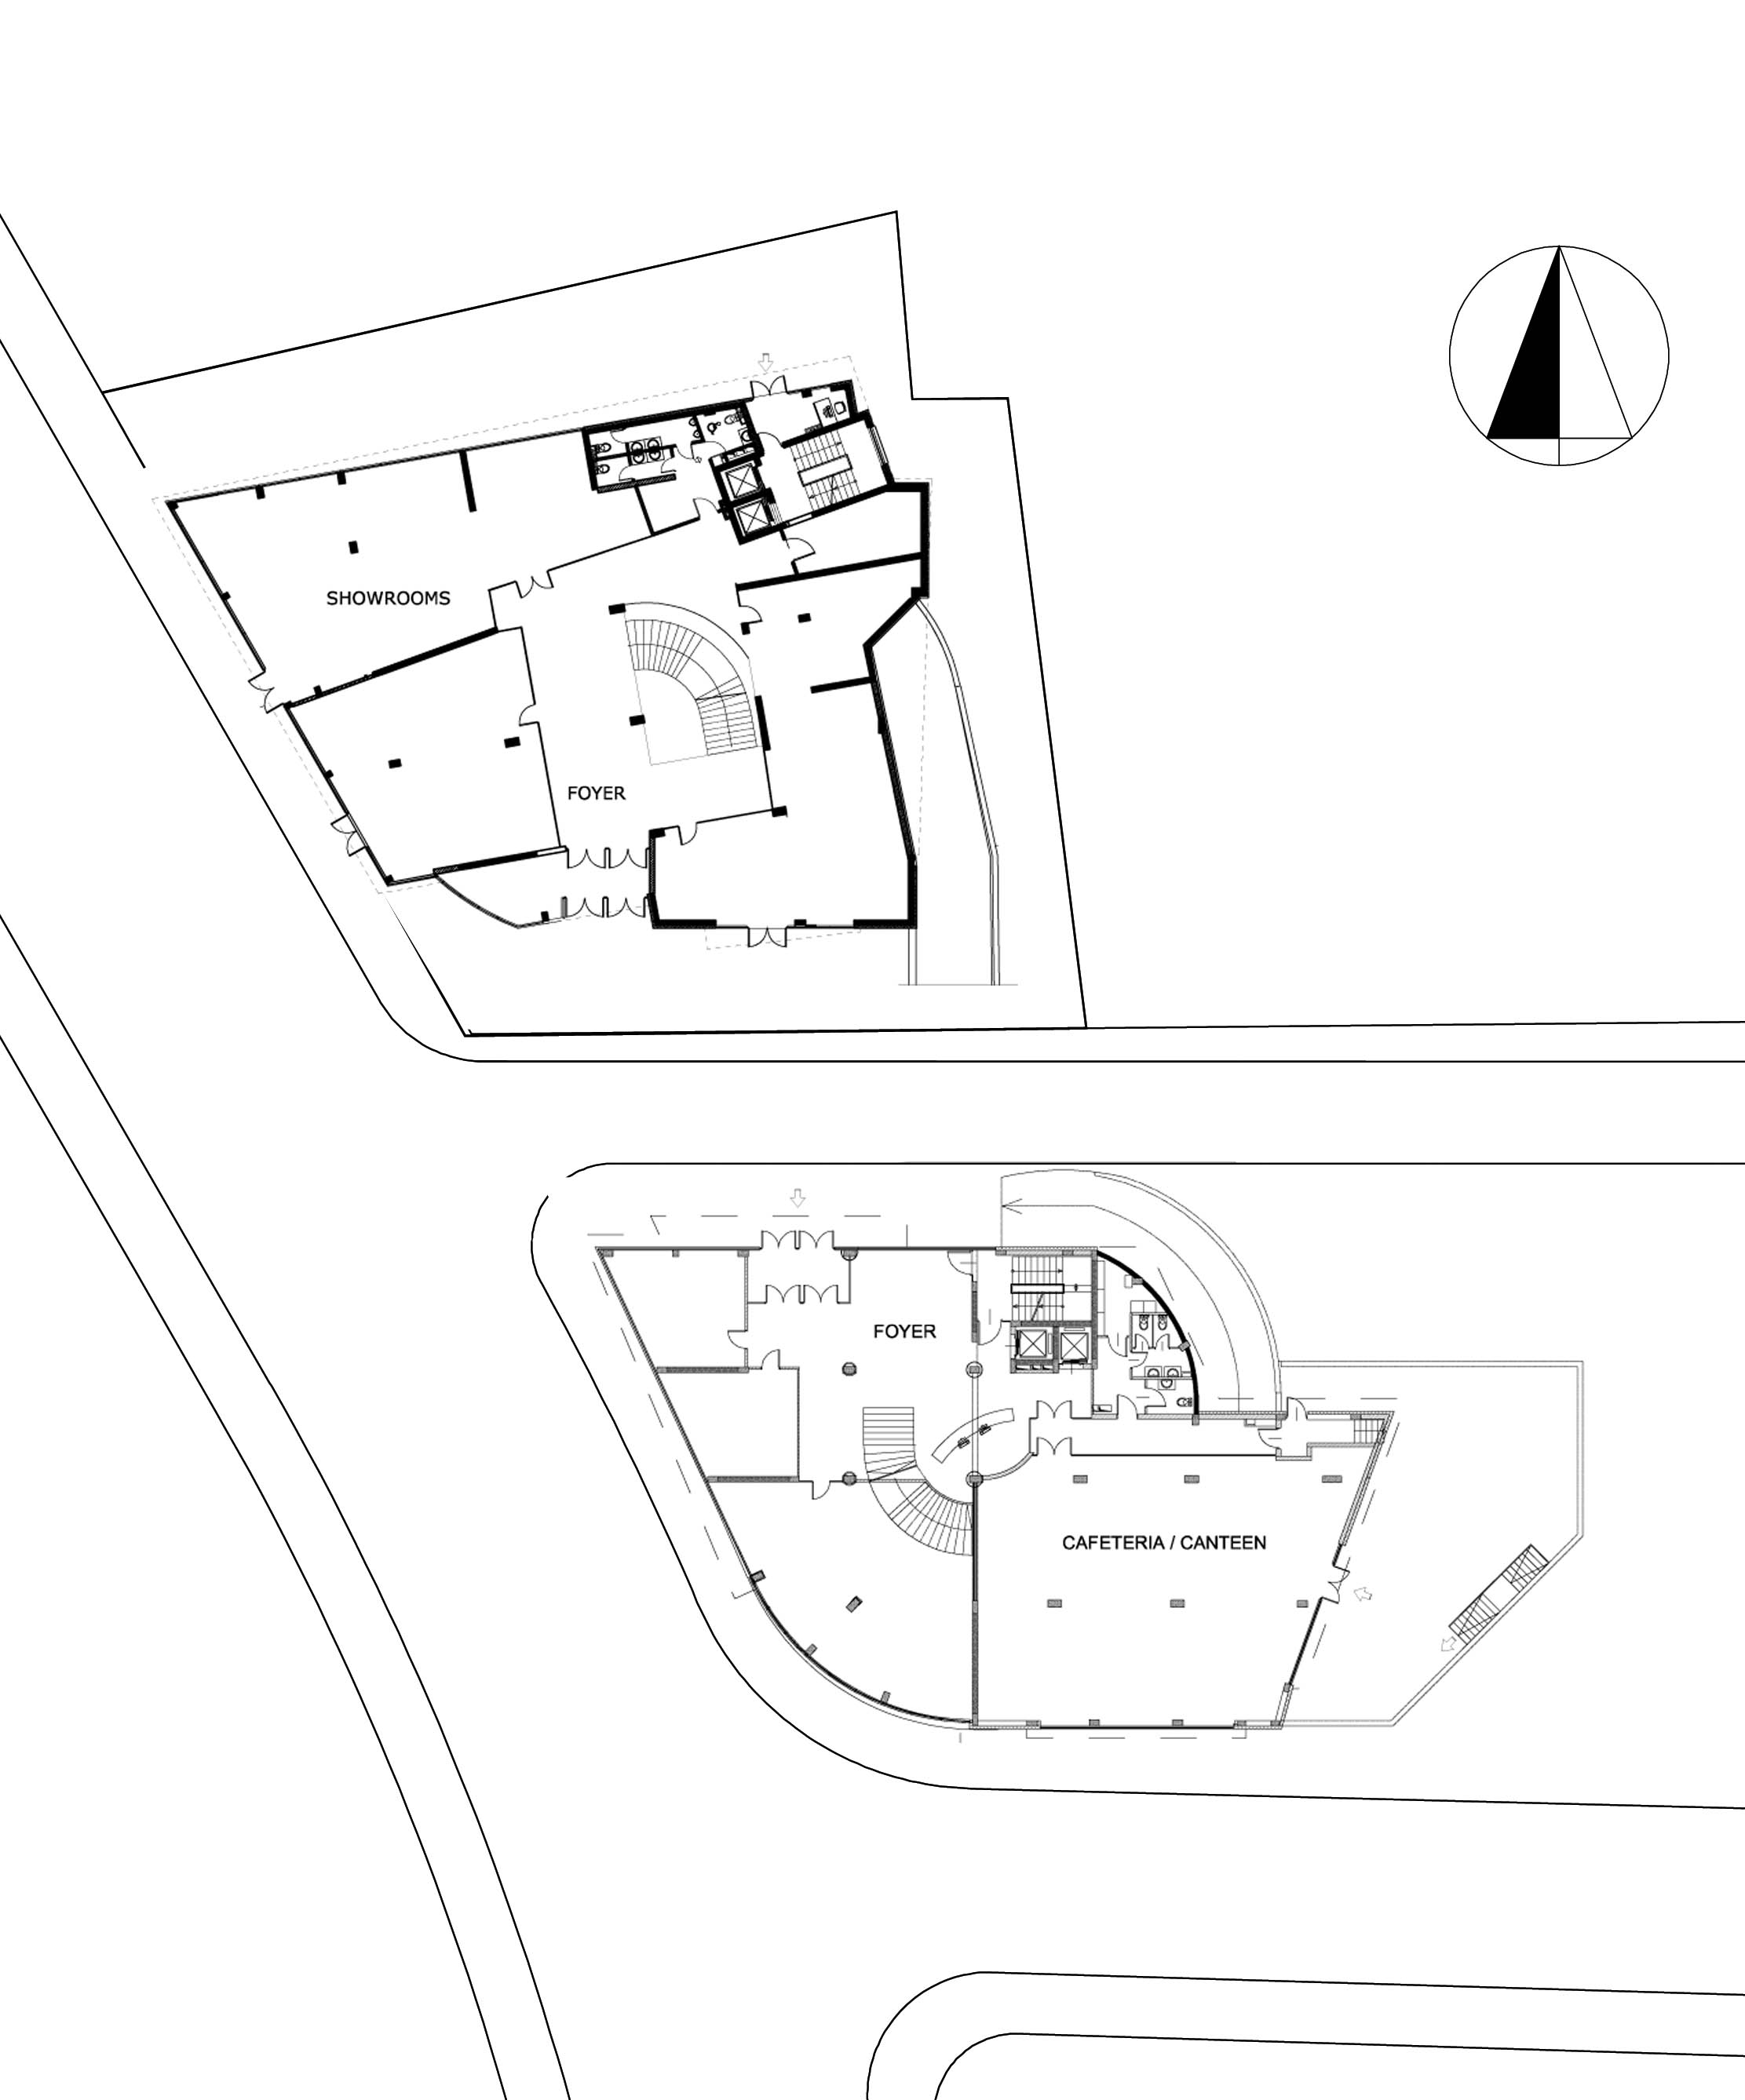 Eumiesaward site plan pooptronica Image collections